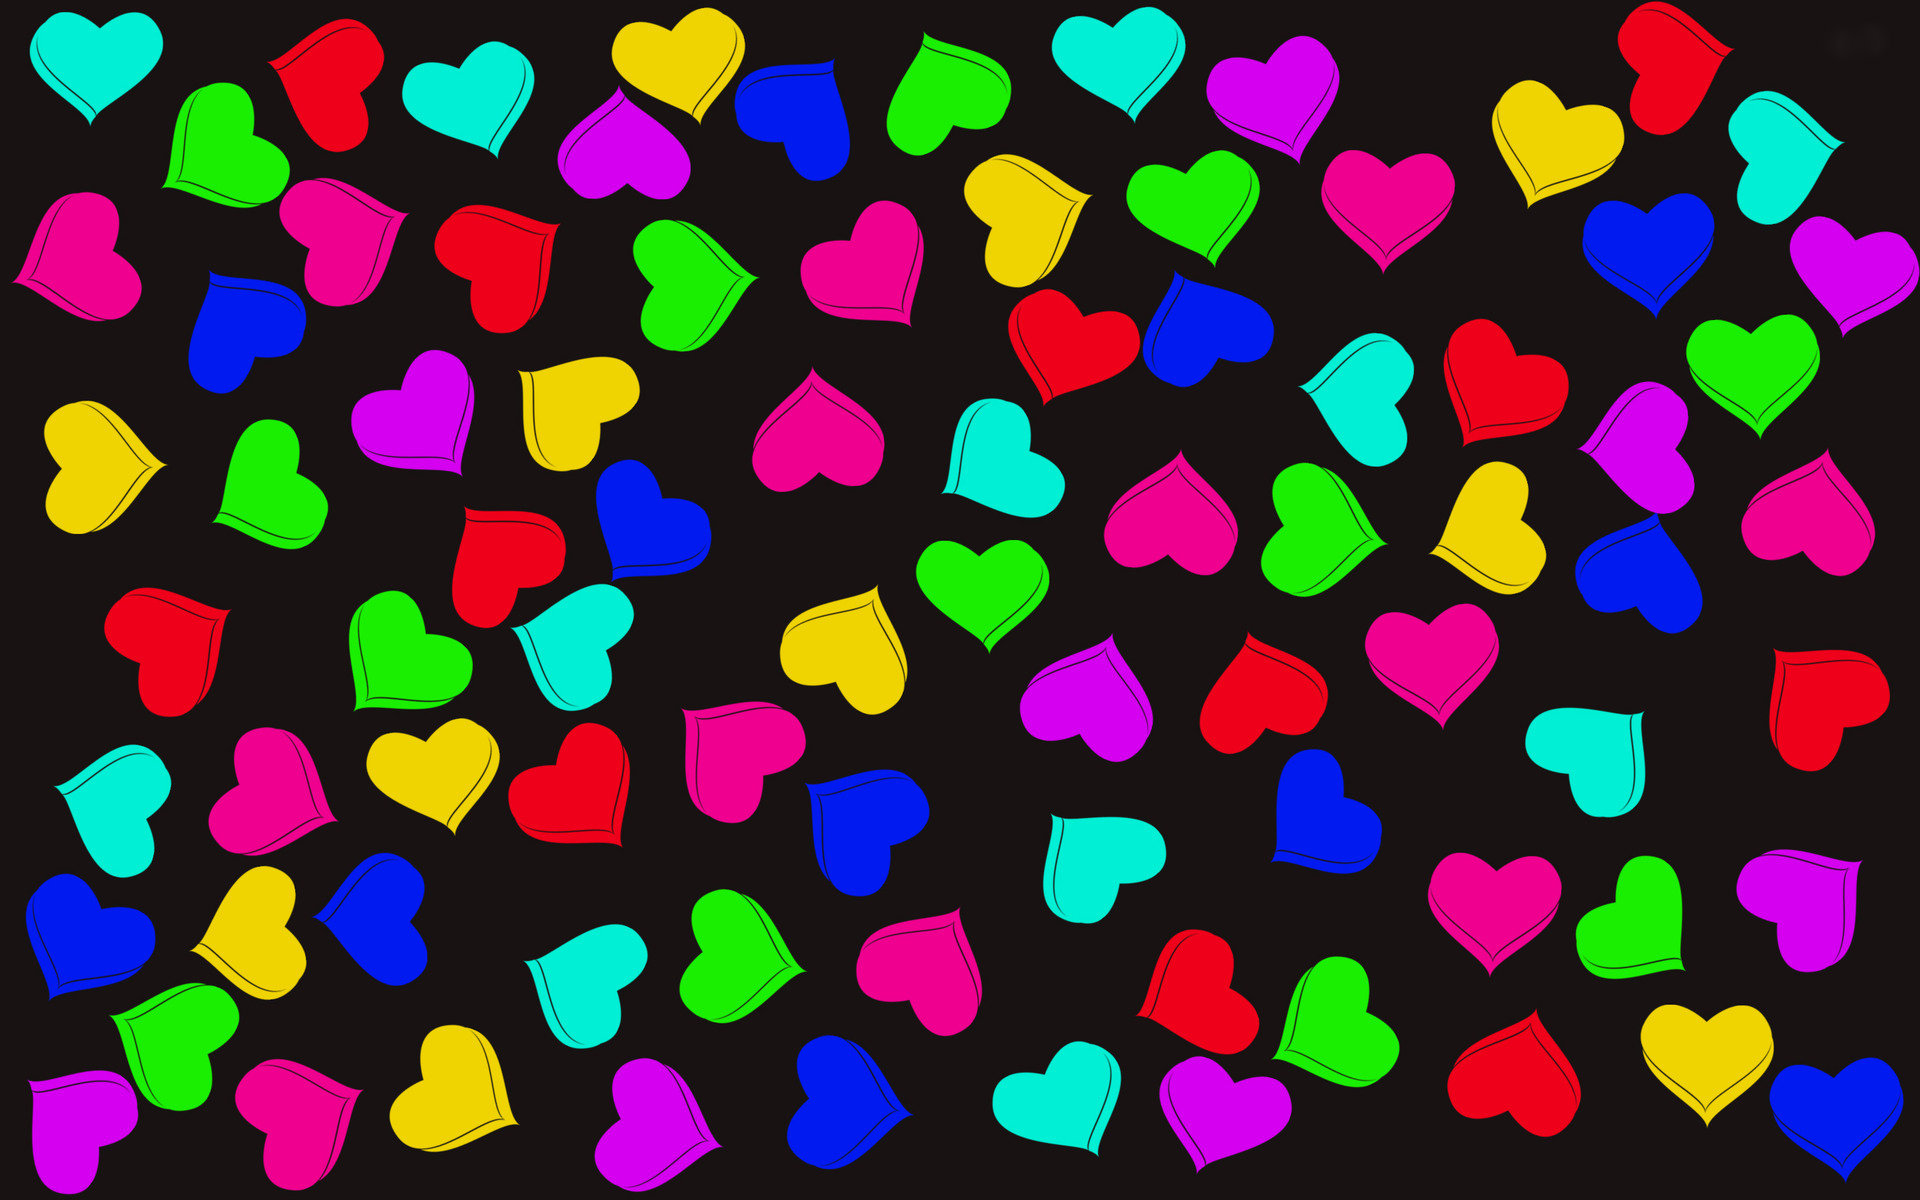 colorful cartoon Love Wallpaper : colorful 3d Wallpaper - WallpaperSafari